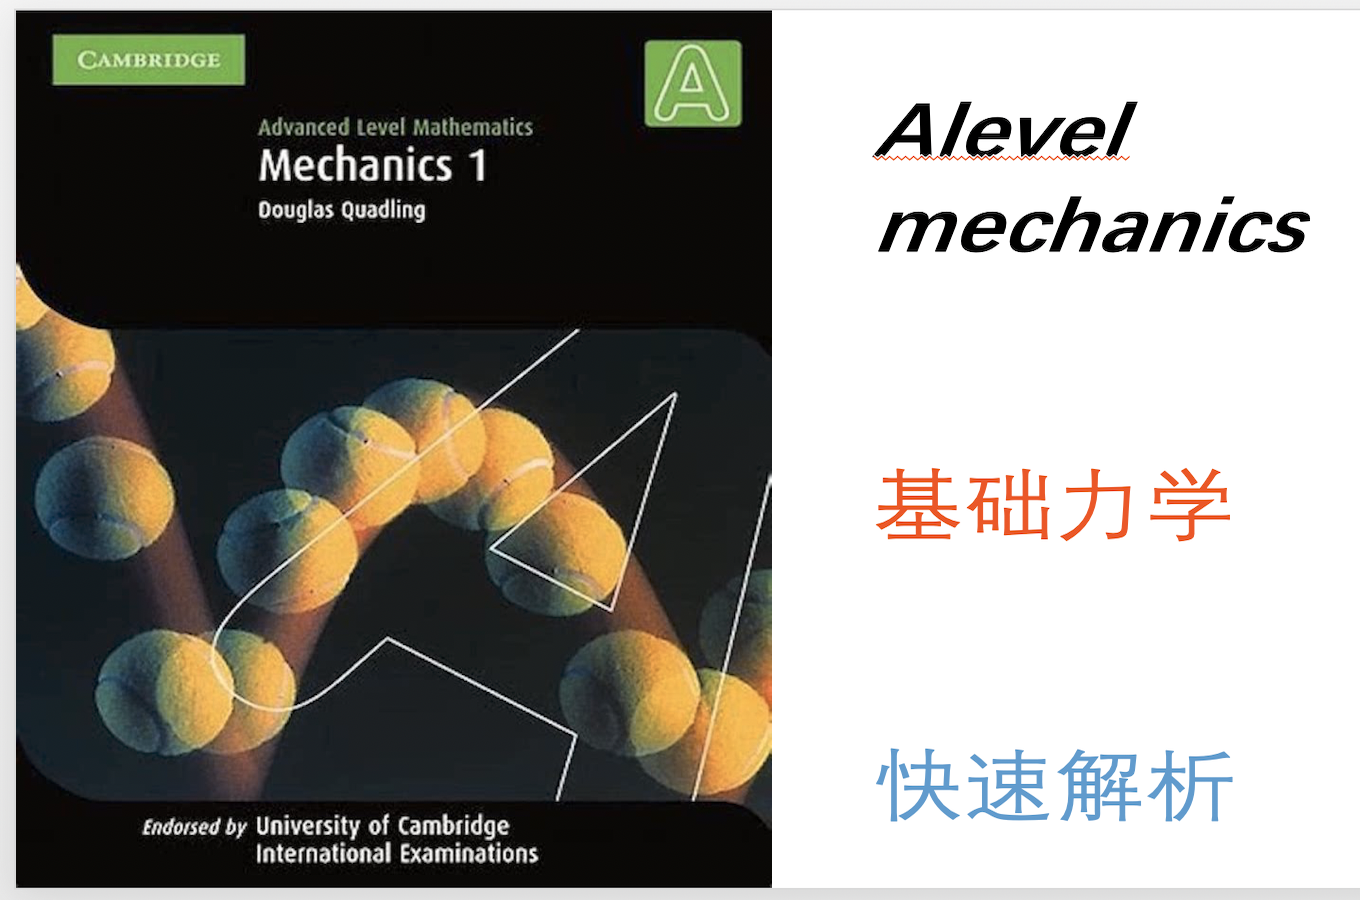 Alevel mechanics 基础力学